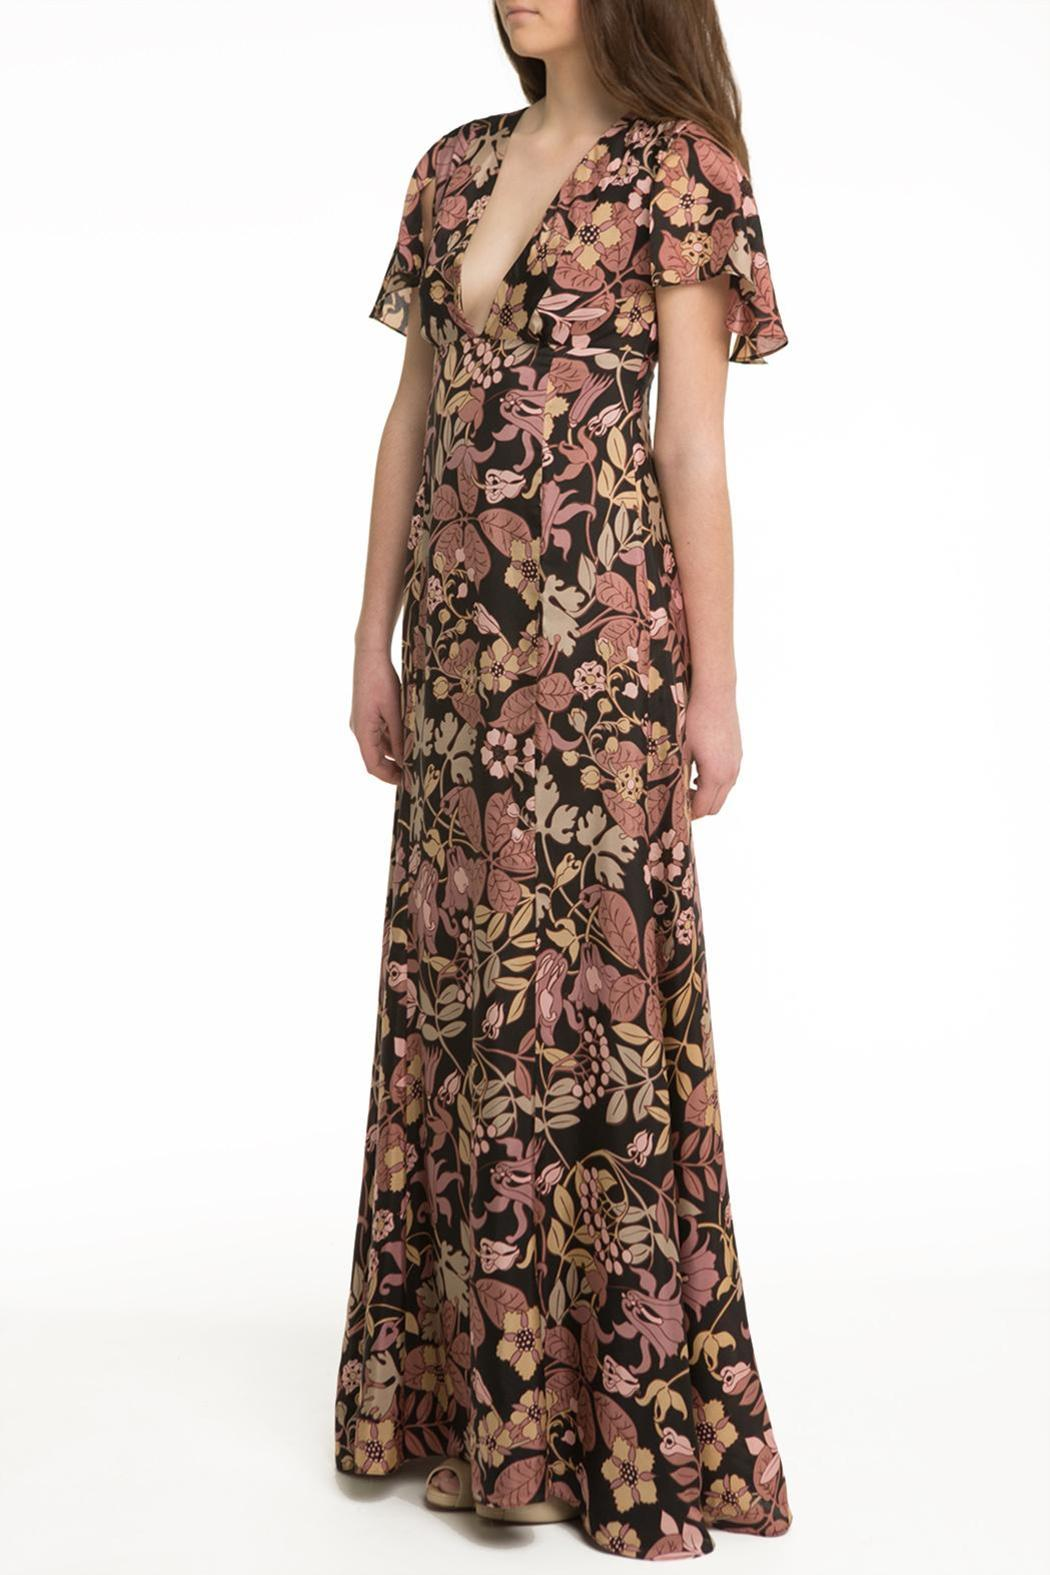 OHLENDORF atelier Floral Silk Maxi - Front Full Image